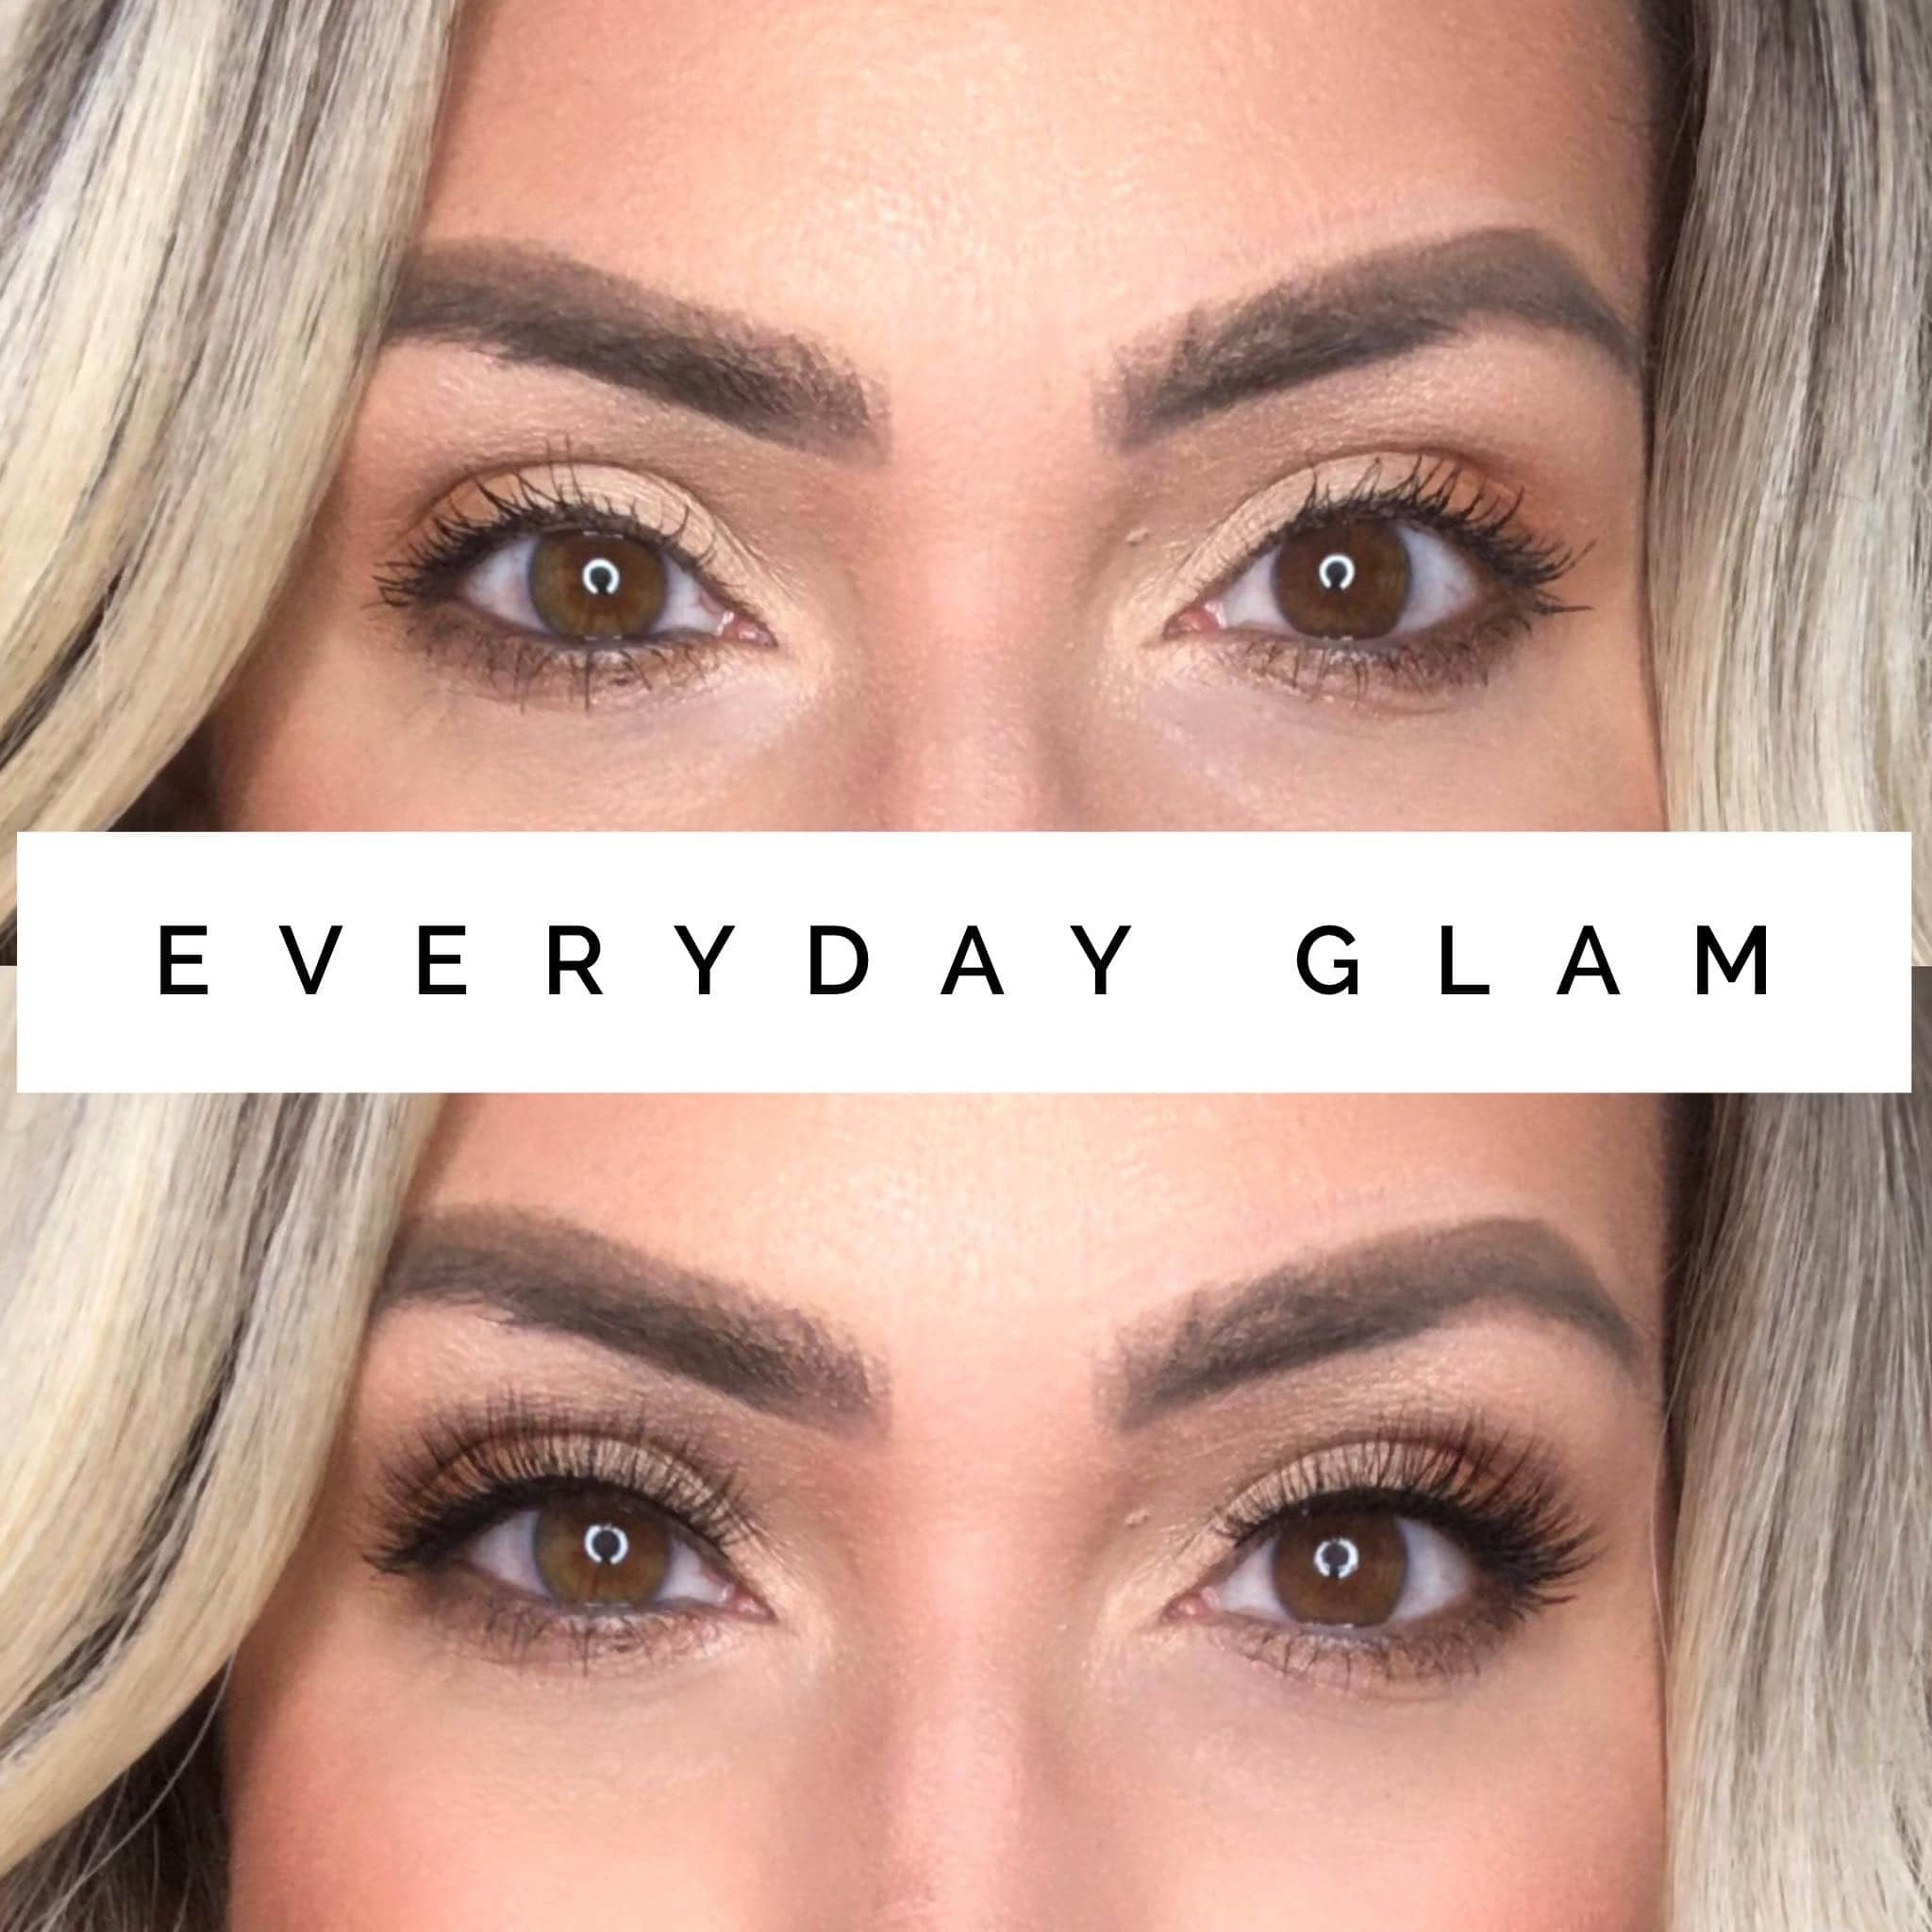 EVERYDAY GLAM LASH